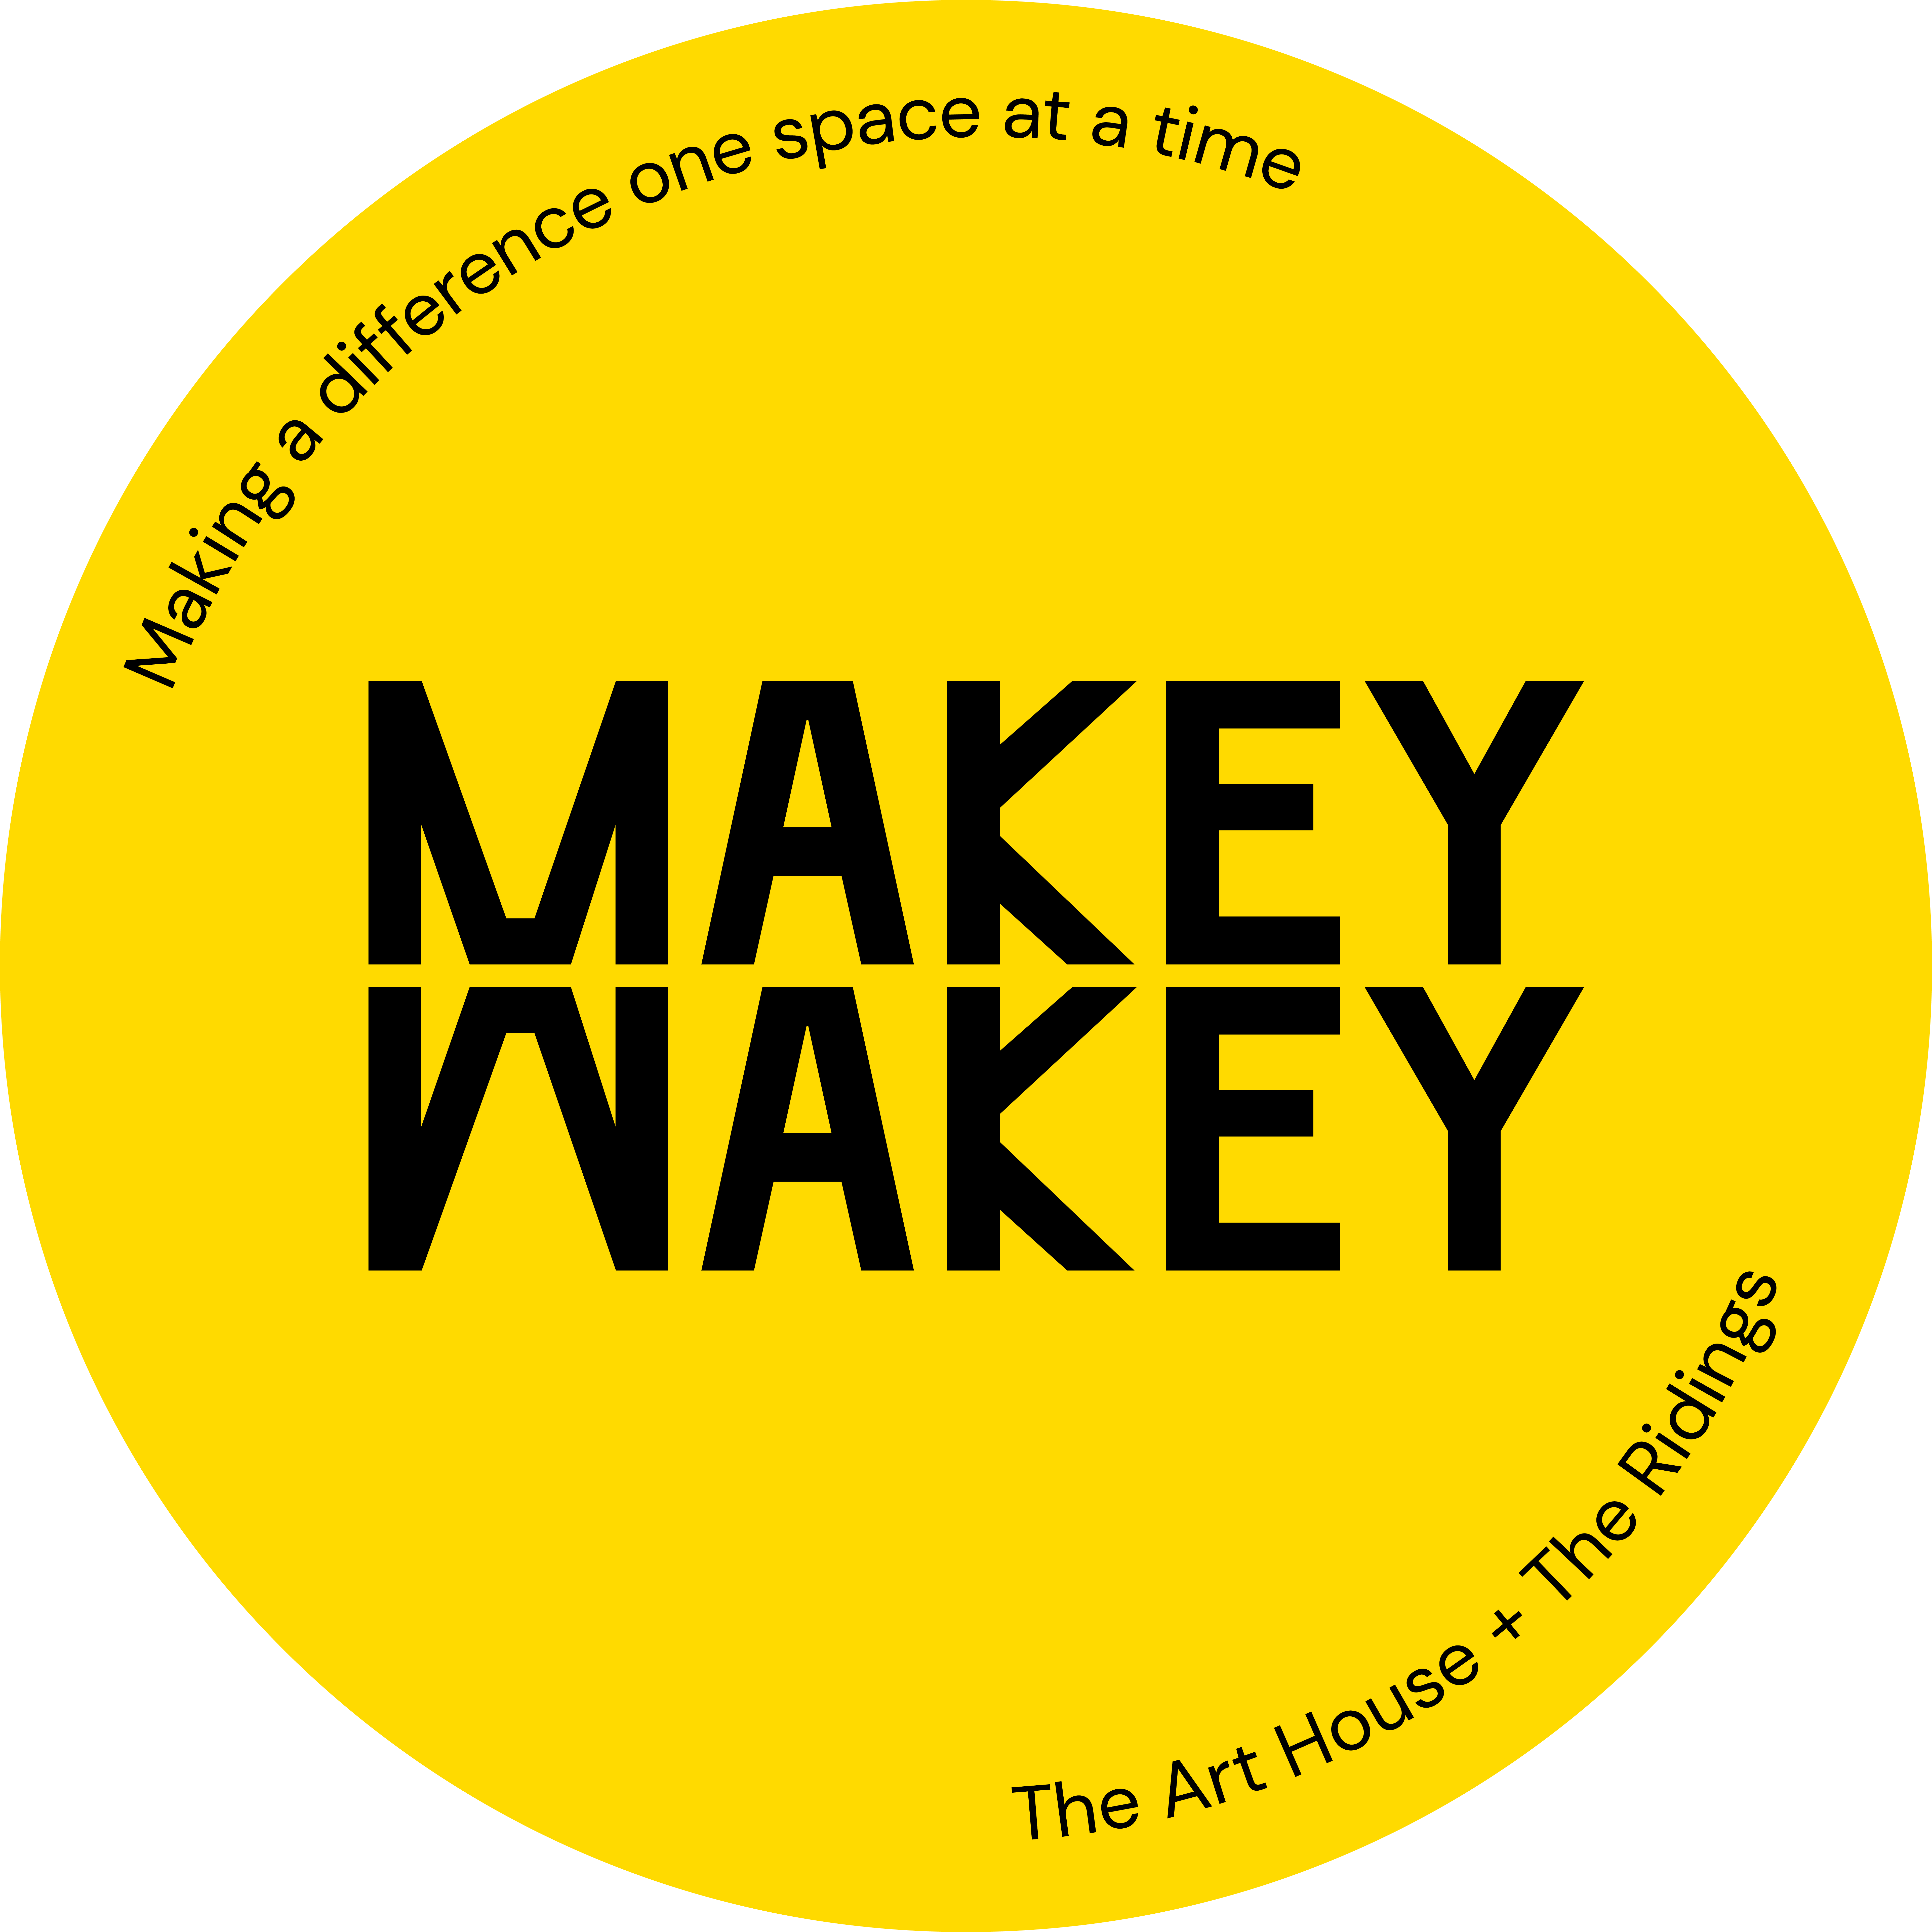 Makey Wakey in Wakefield with Ridings Shopping Centre and The Art House